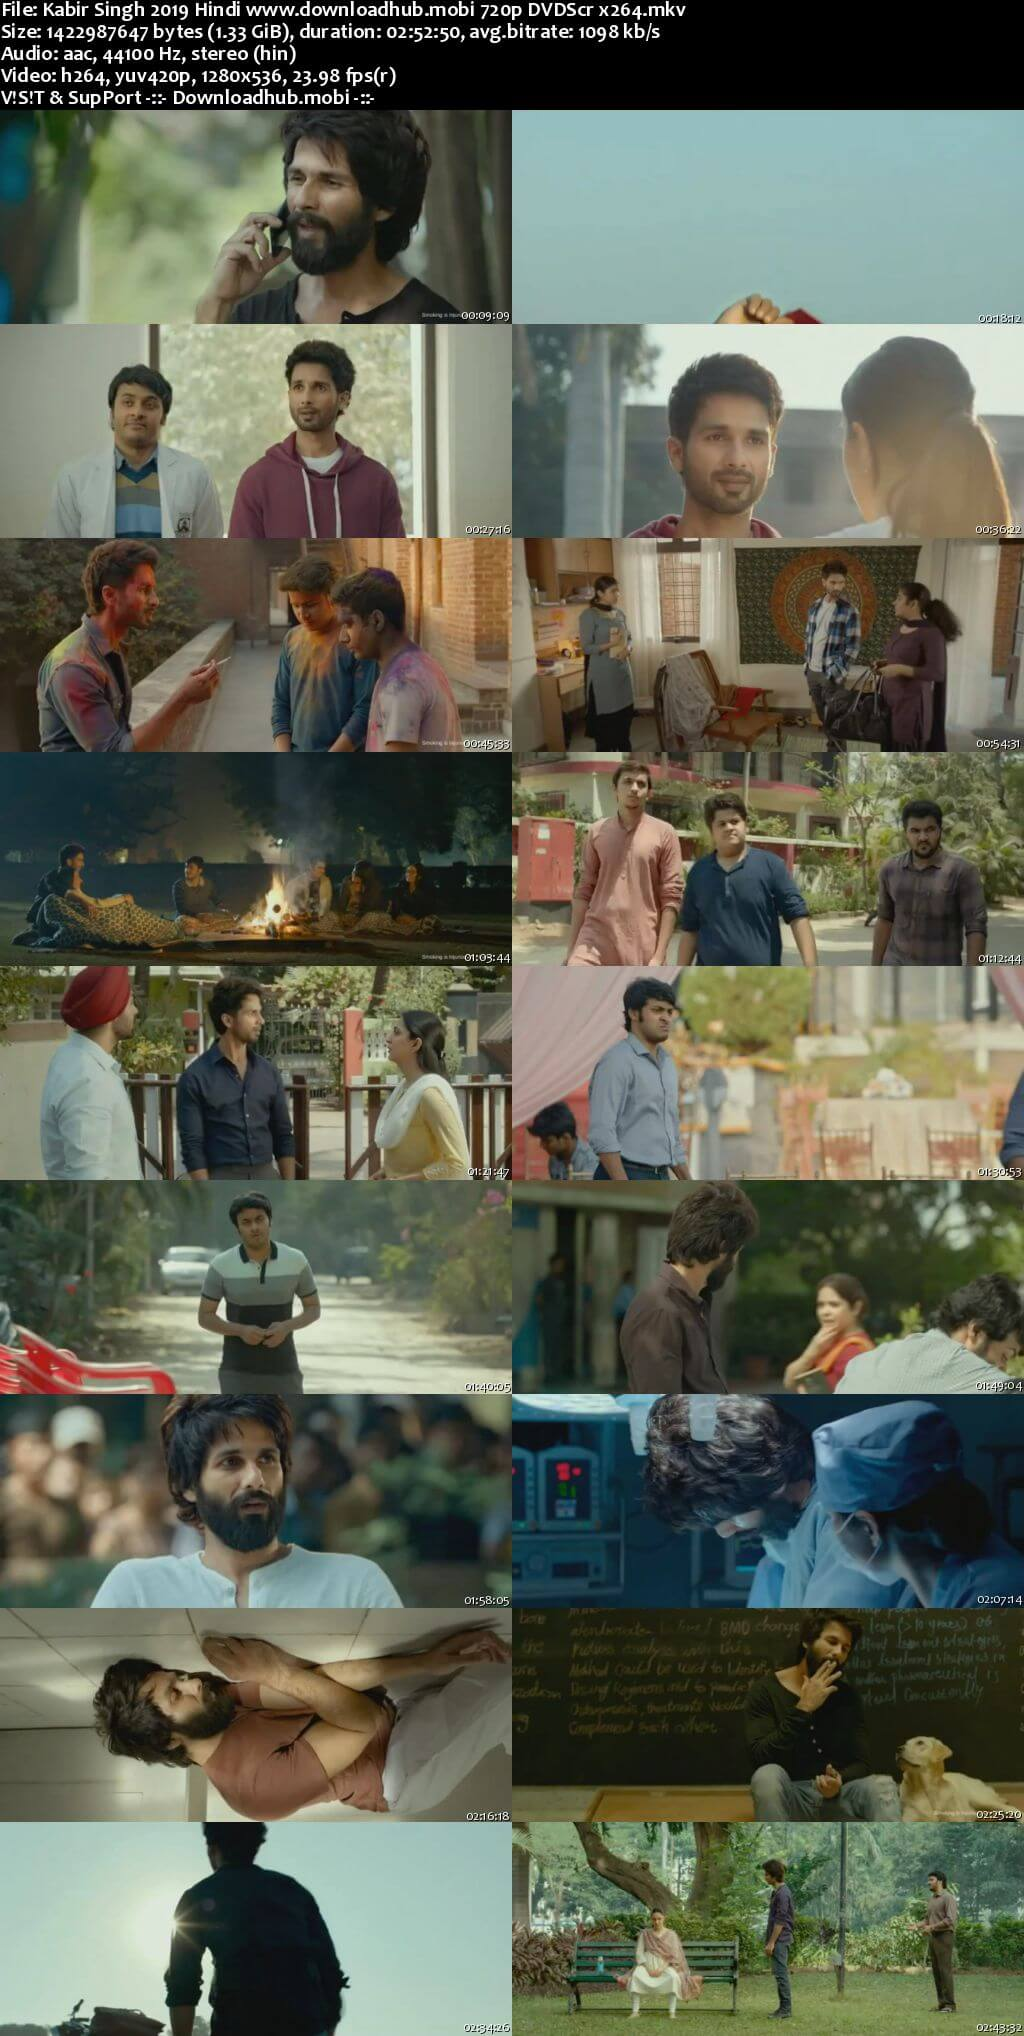 Kabir Singh 2019 Hindi 720p DVDScr x264